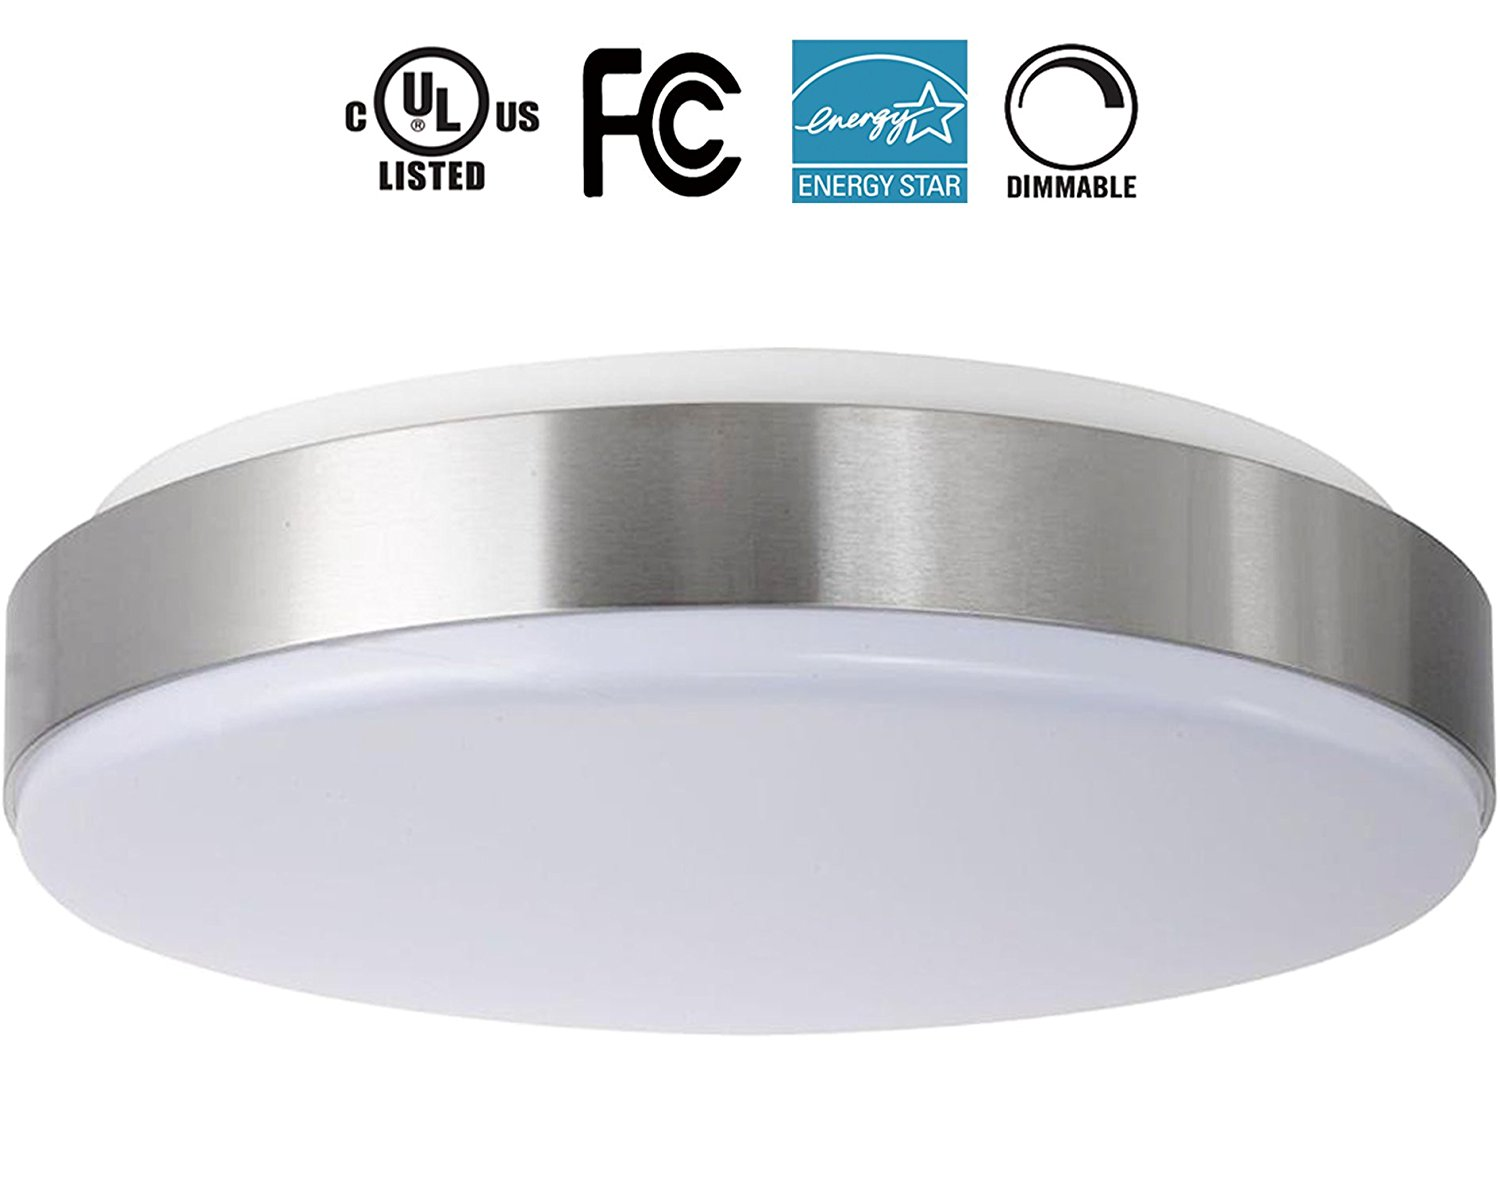 22W 15-Inch Natural light White Dimmable LED Ceiling Lights, 200W Incandescent (50-100W Fluorescent) Bulb Equivalent, 4000K, Ceiling Light Fixture, Ceiling Lighting, Flush Mount Light 4000K.